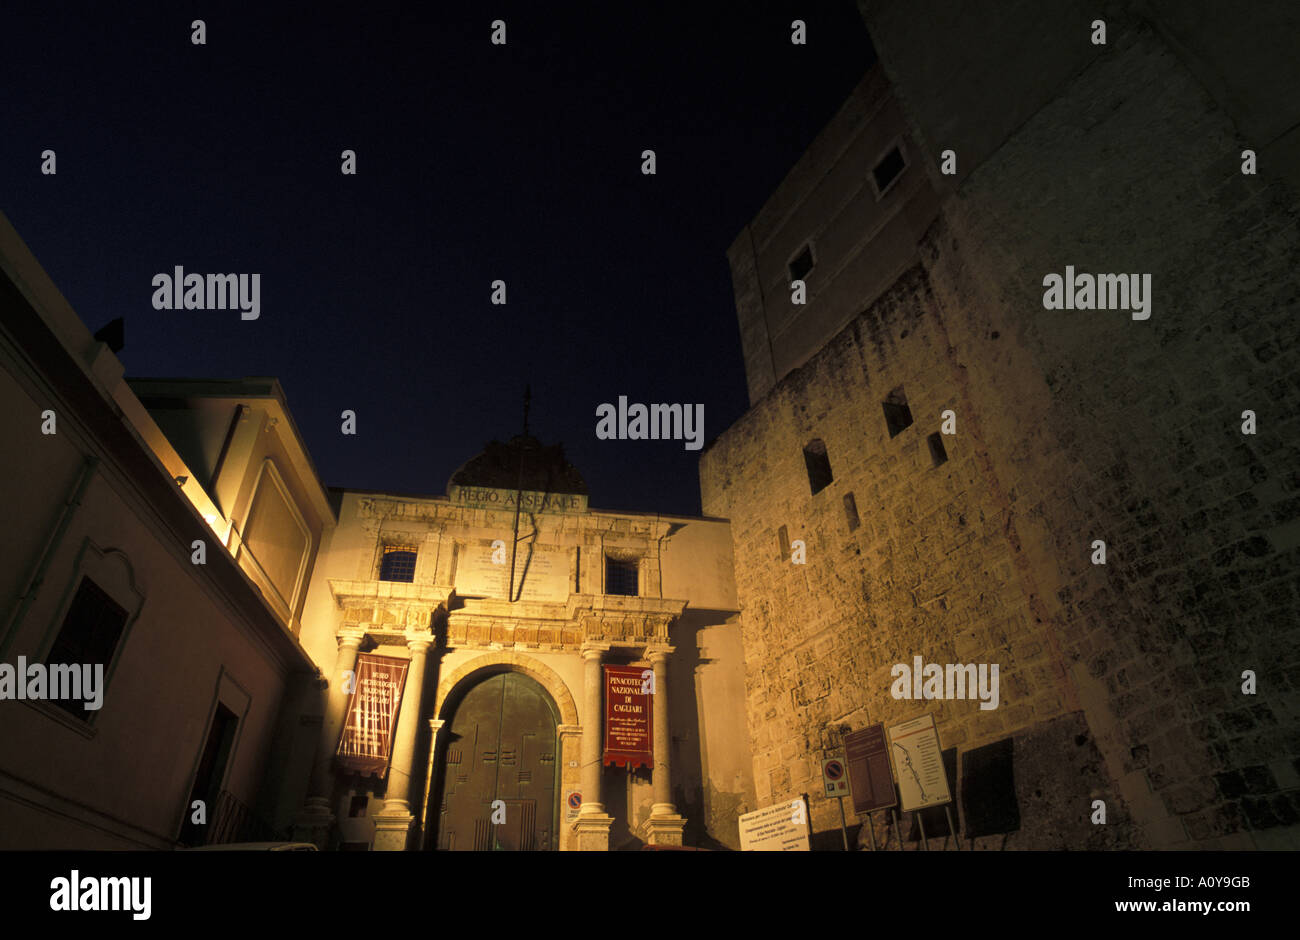 Arsenale city gate Cagliari Sardinia Italy - Stock Image